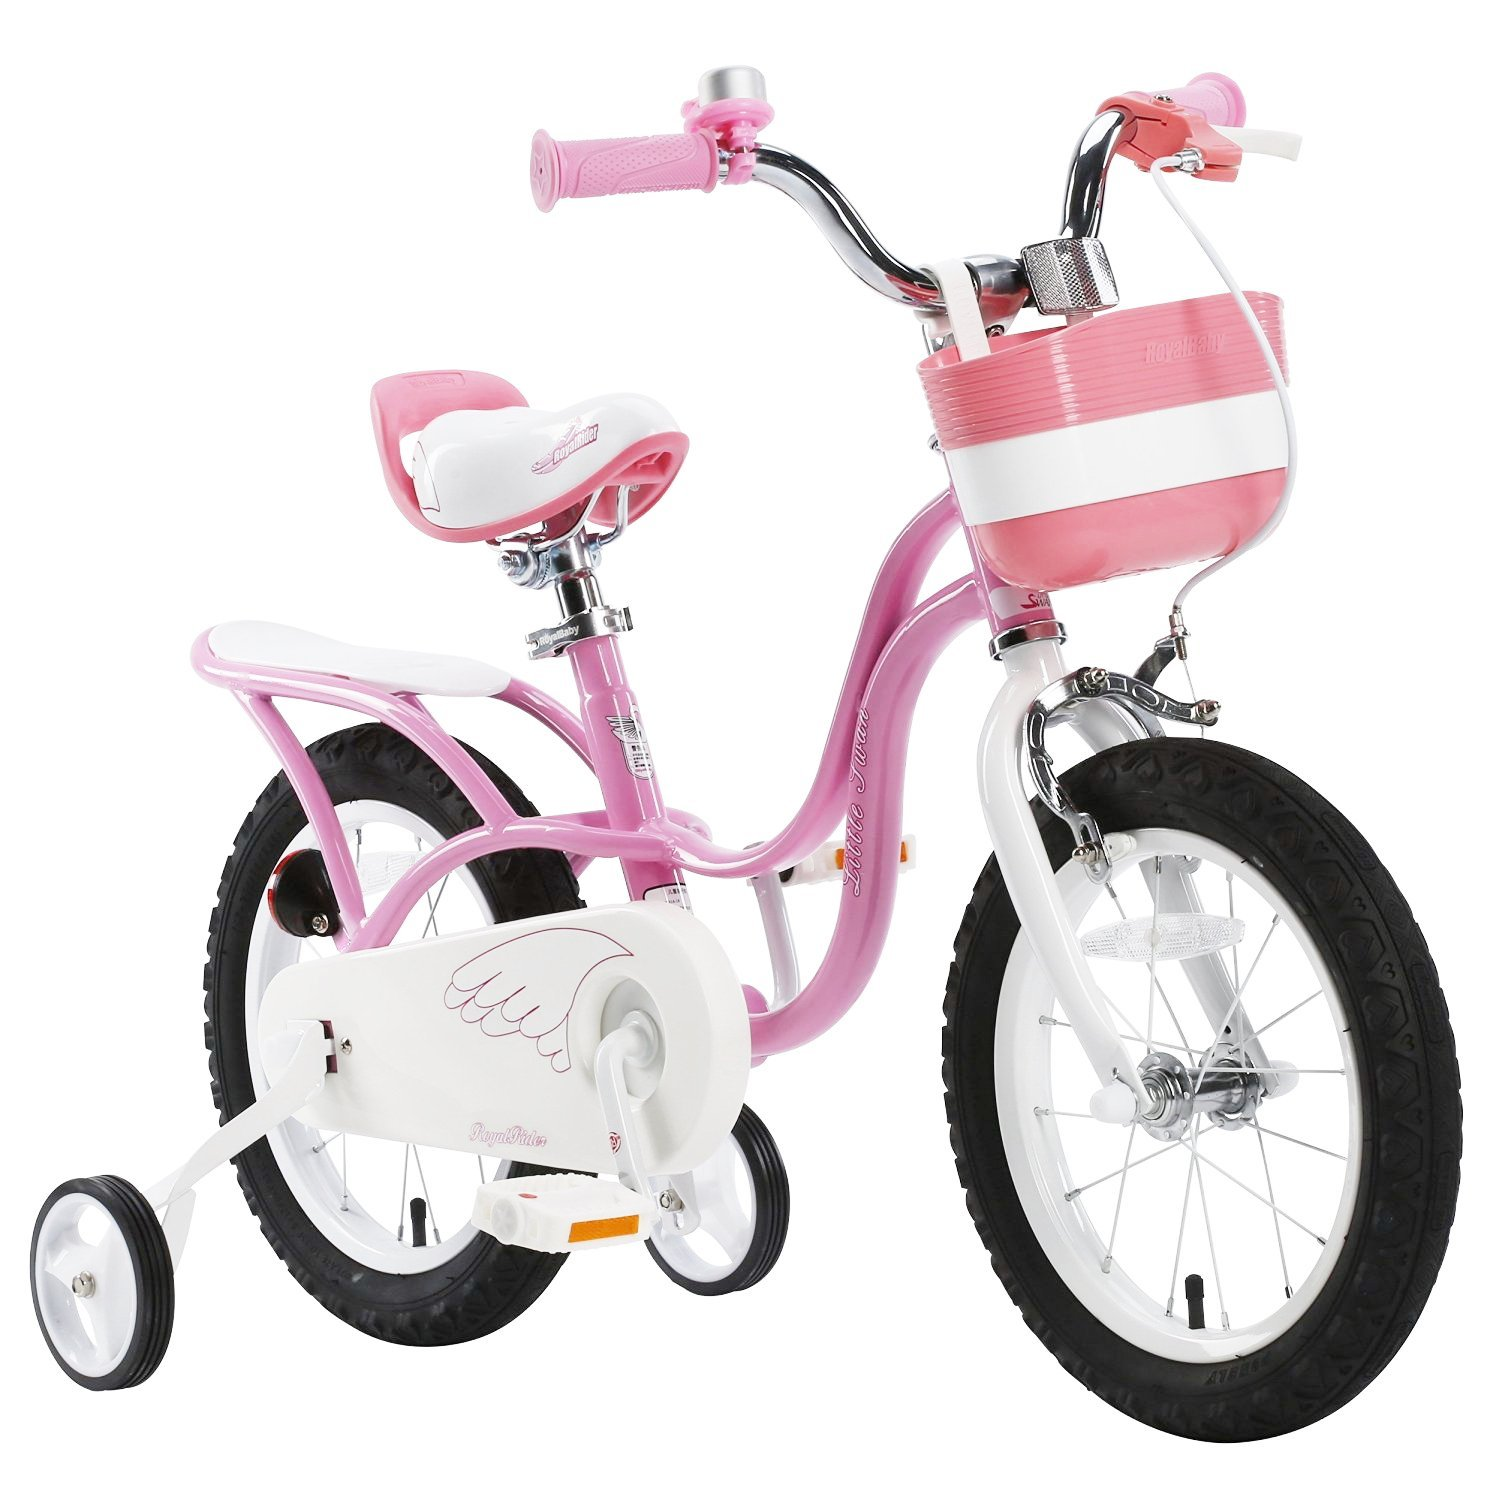 Royal Baby Little Swan Pink Girls Bike Review